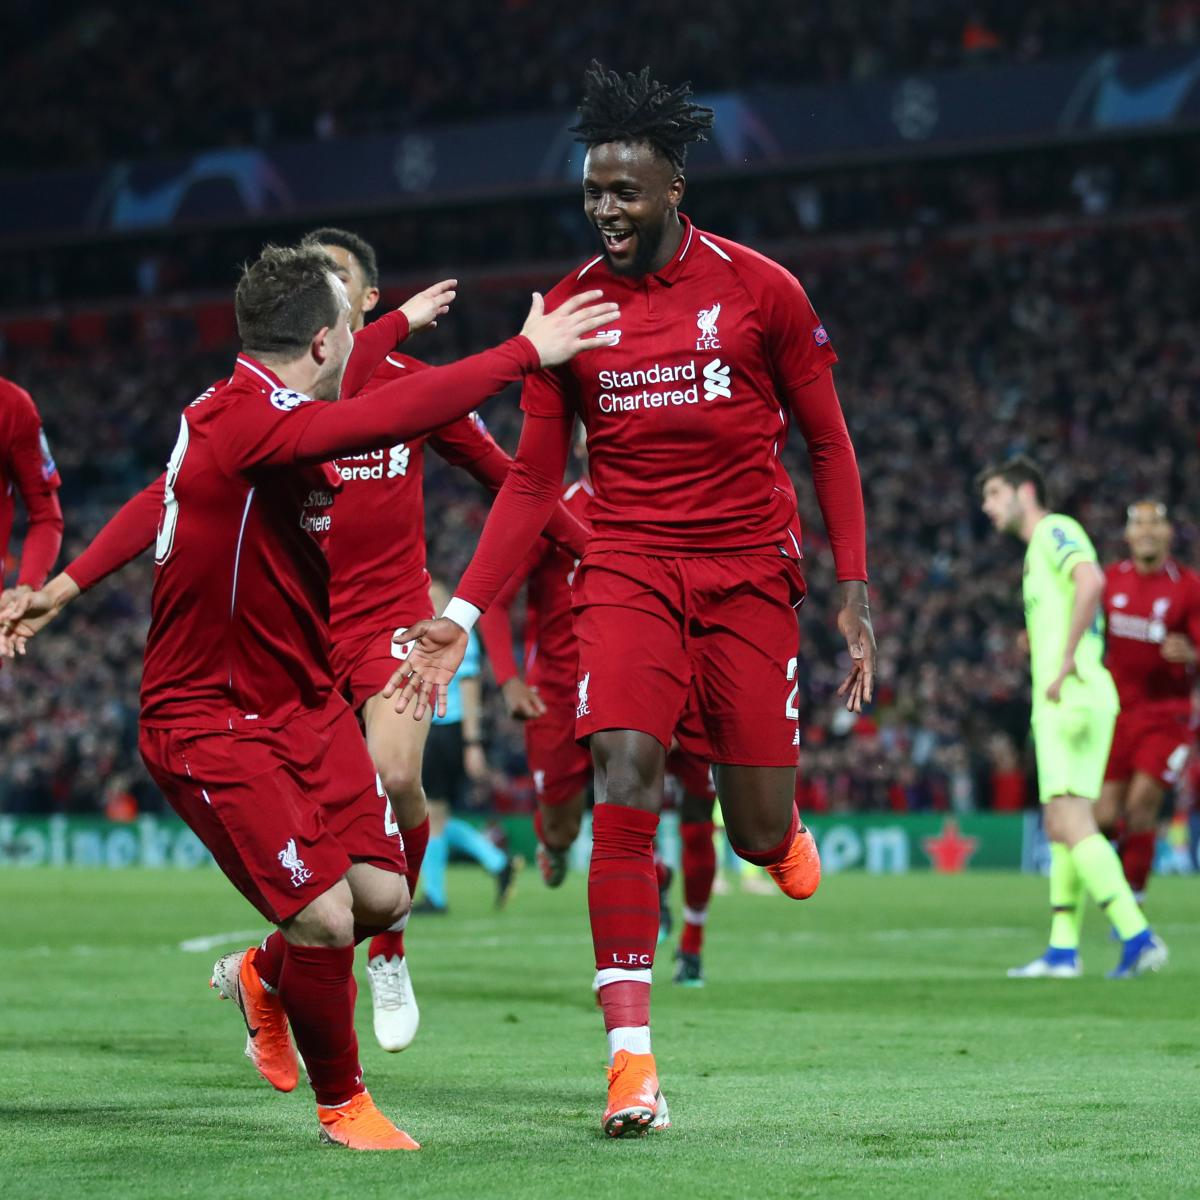 Liverpool 4 0 Barcelona Result 4 3 Agg: Liverpool Complete Miracle Comeback Vs. Barcelona, Advance